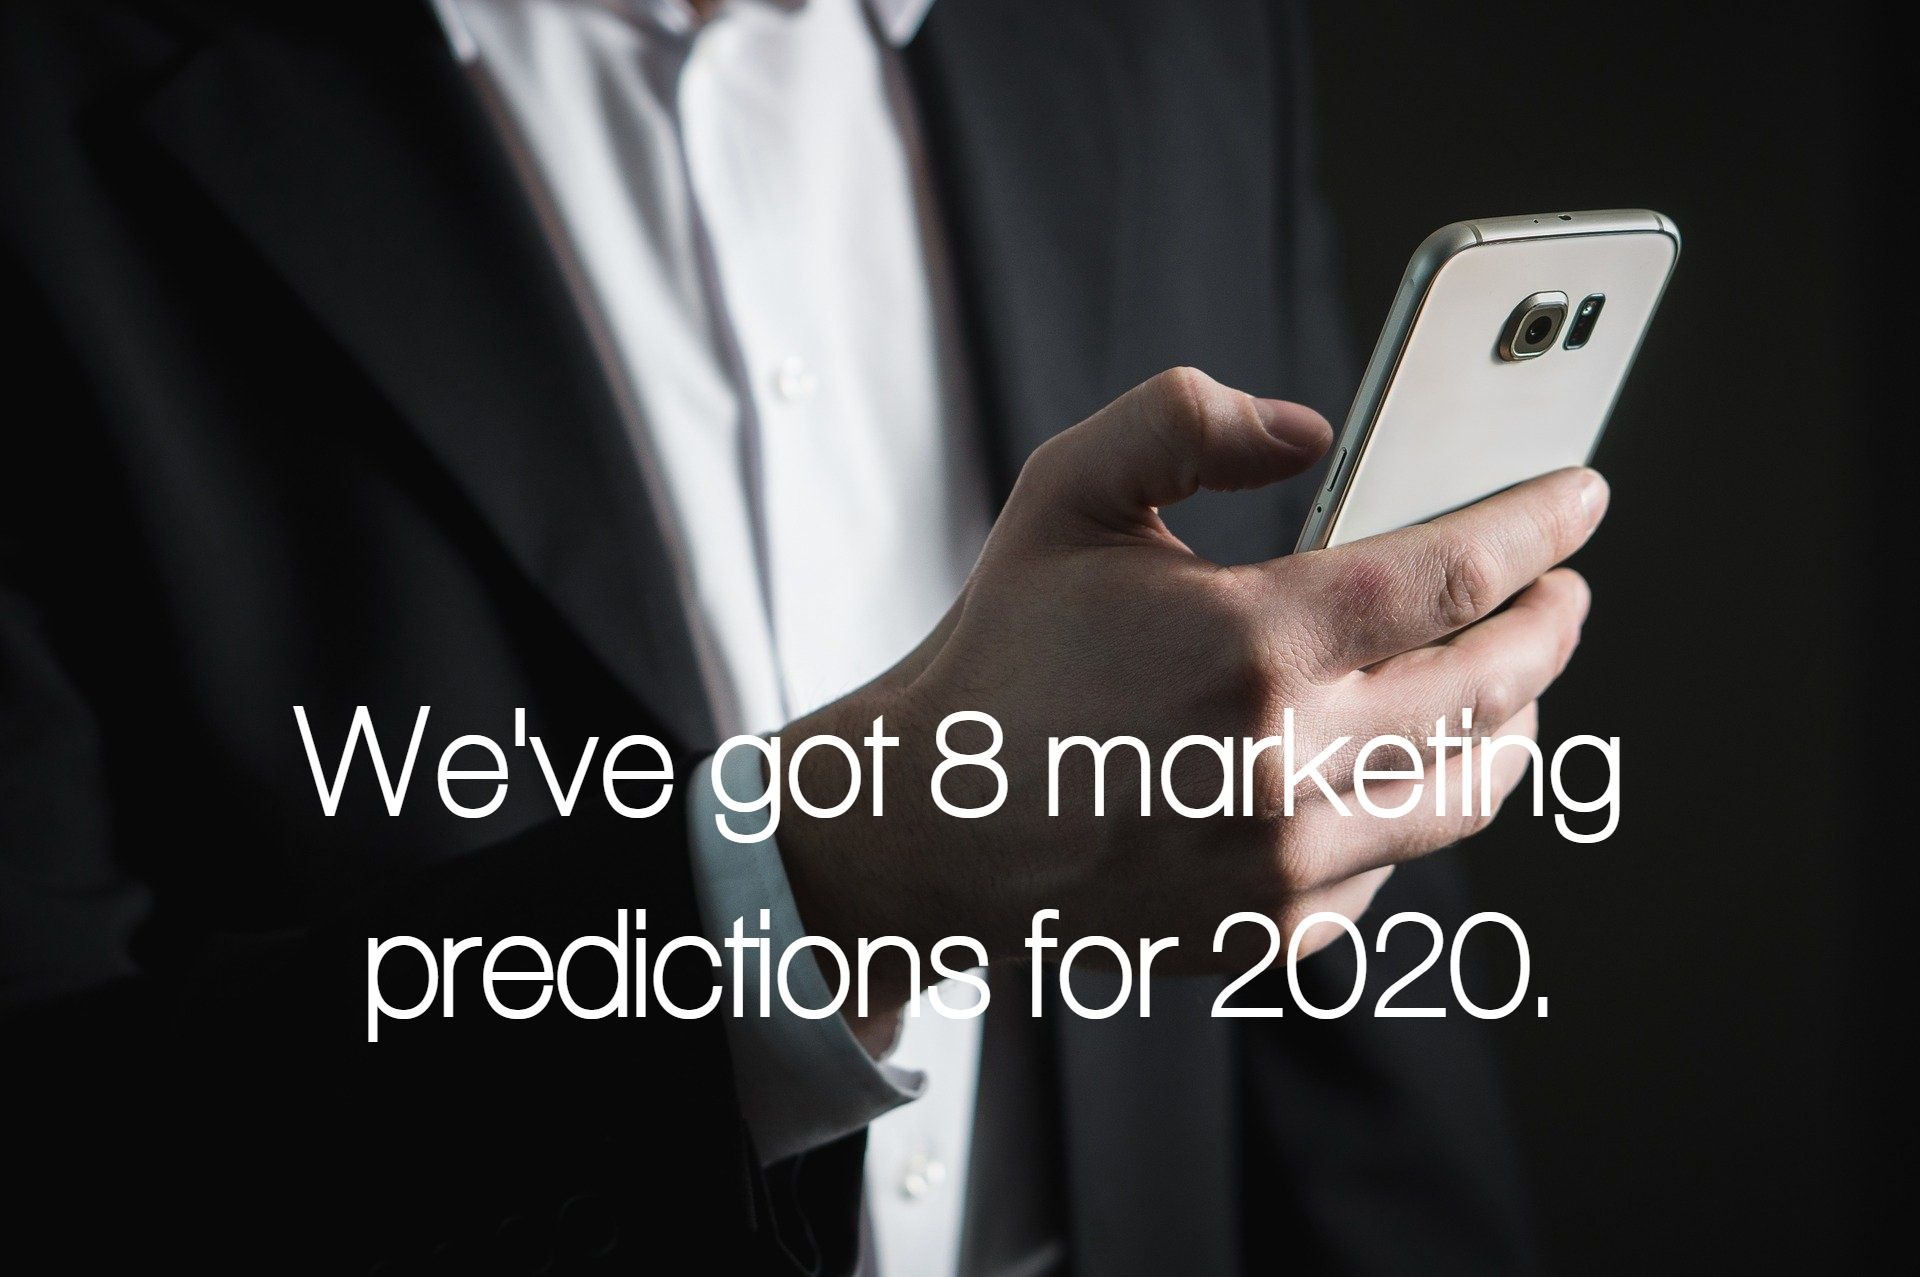 We've got 8 marketing predictions for 2020.